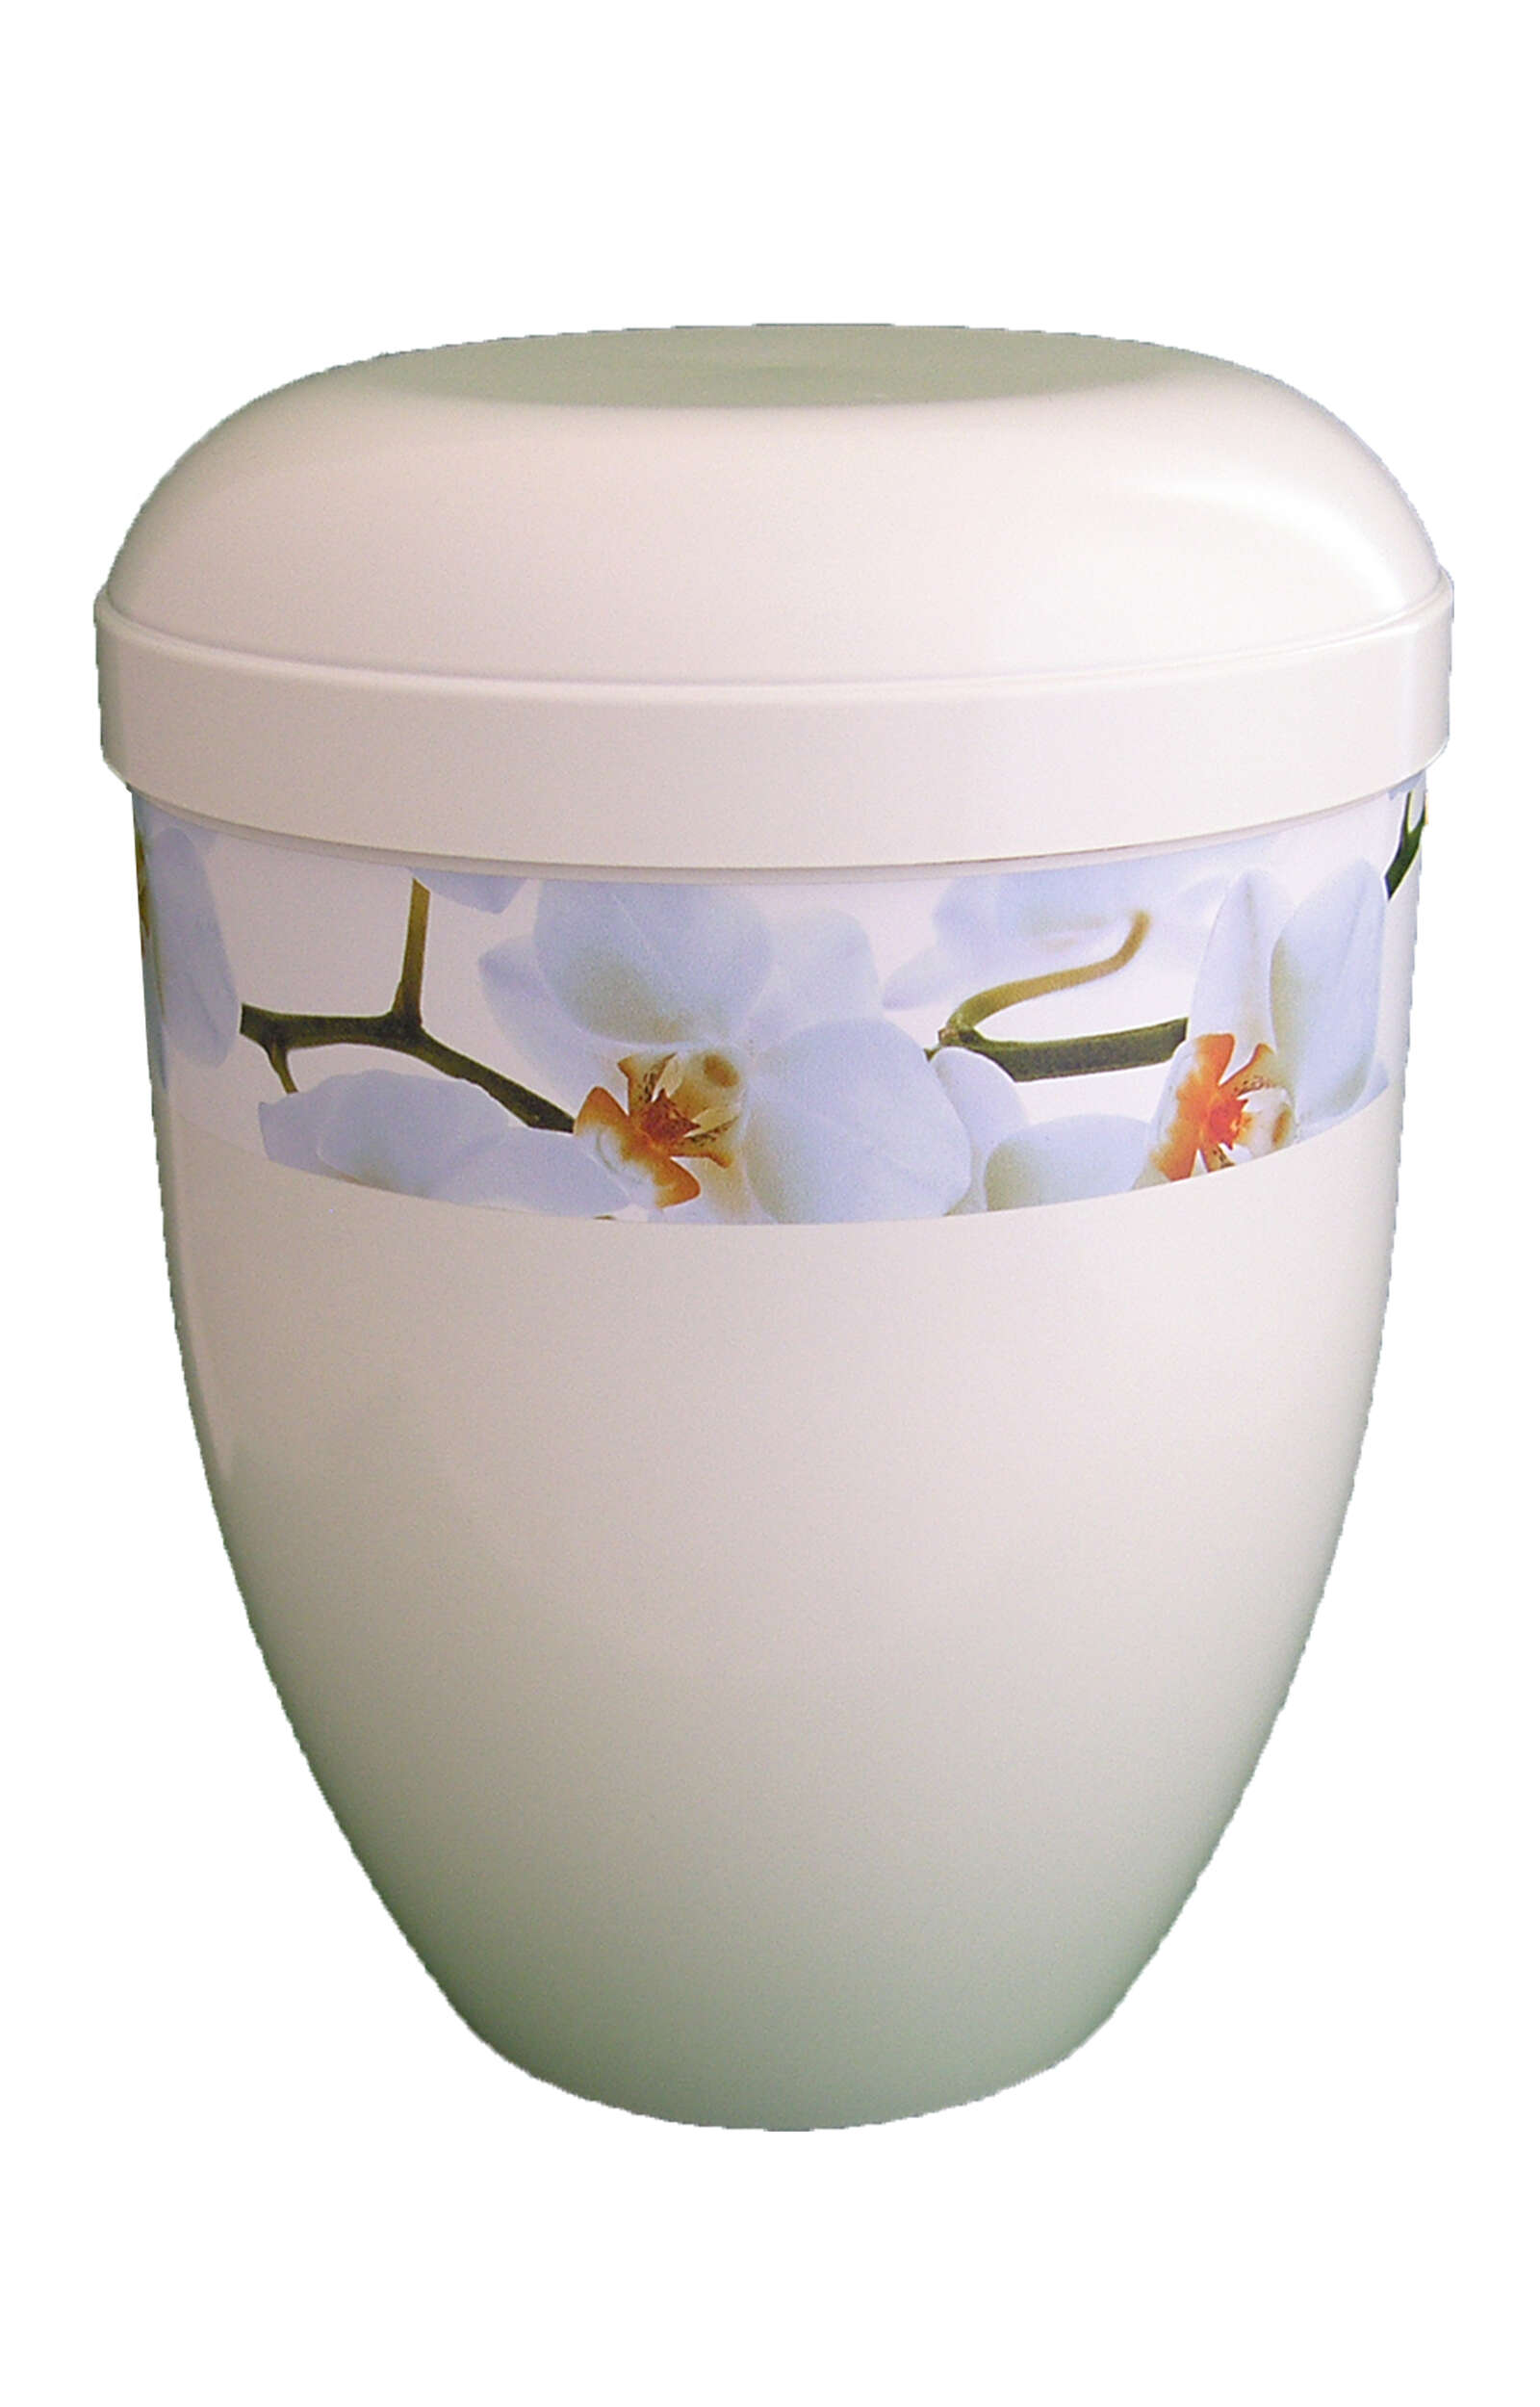 en BWG3706 biodigradable urn flower white glossy orchid funeral urns on sale panorama